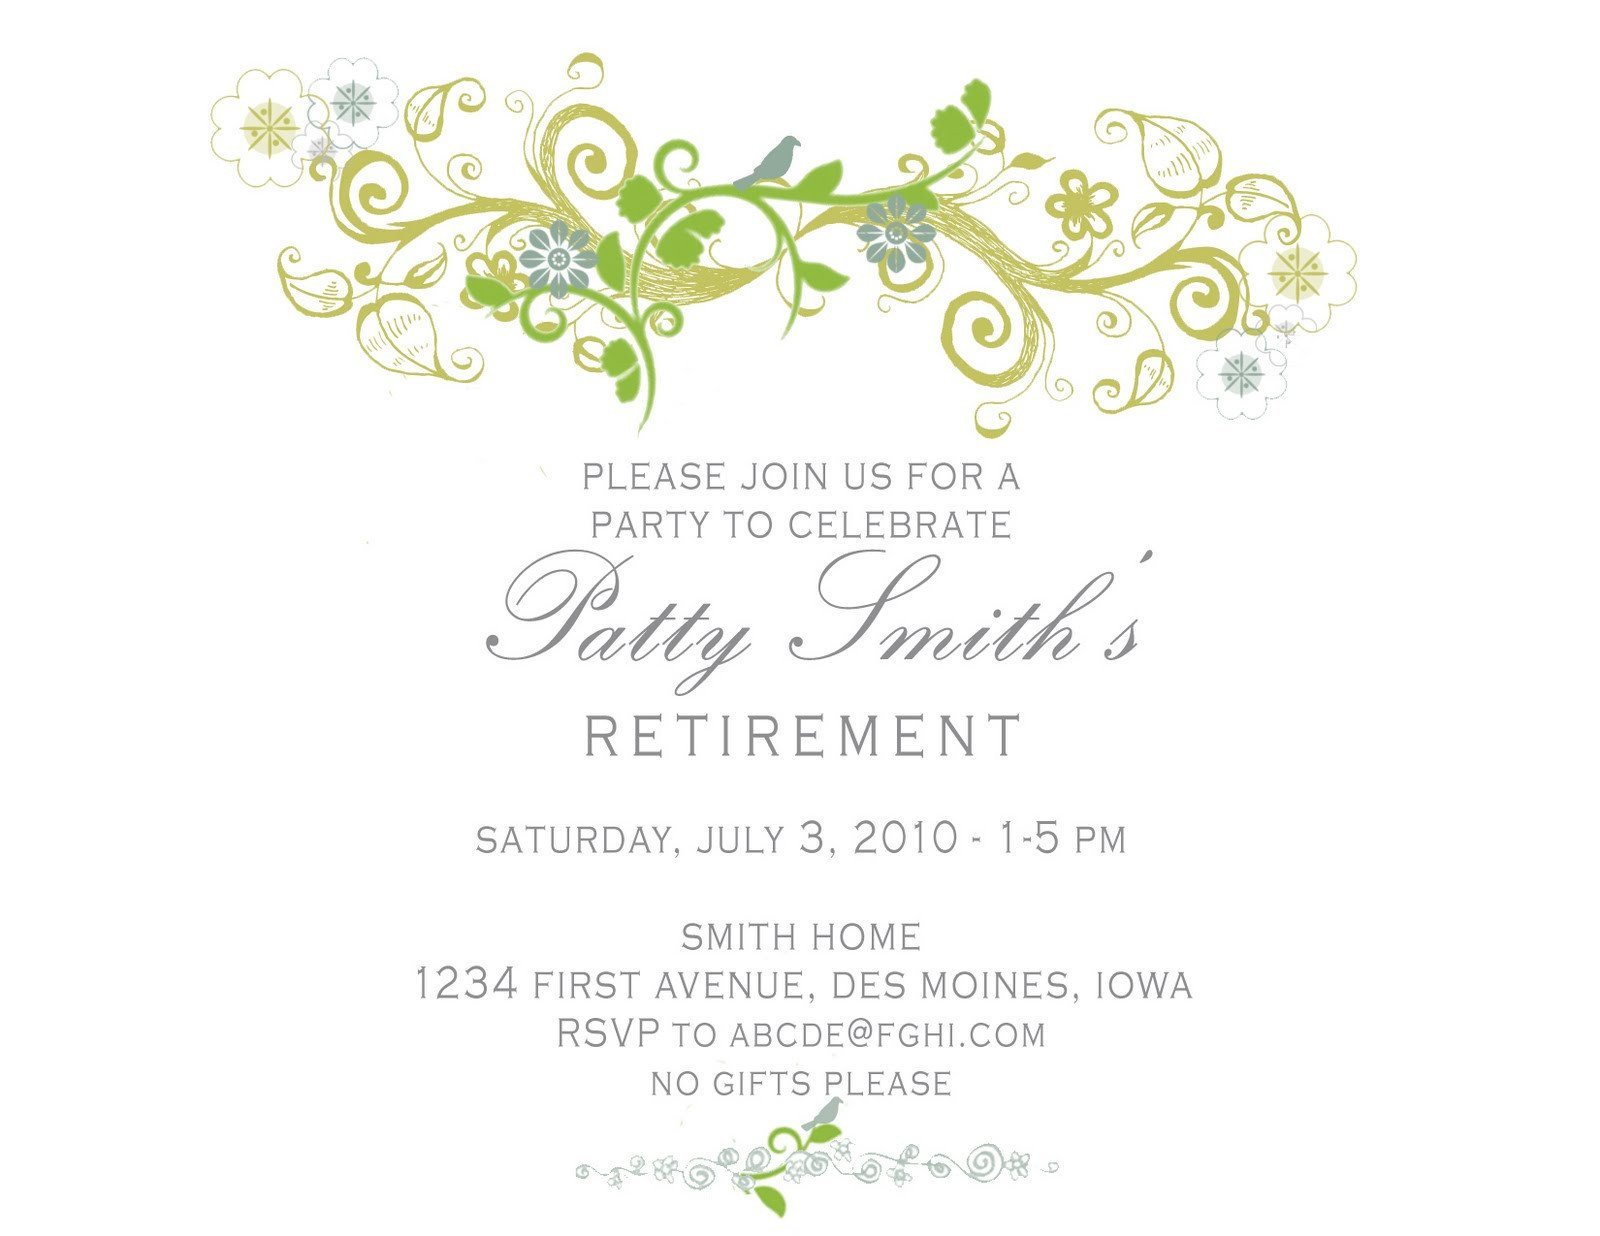 Retirement Party Invitation Templates Idesign A Retirement Party Invitation